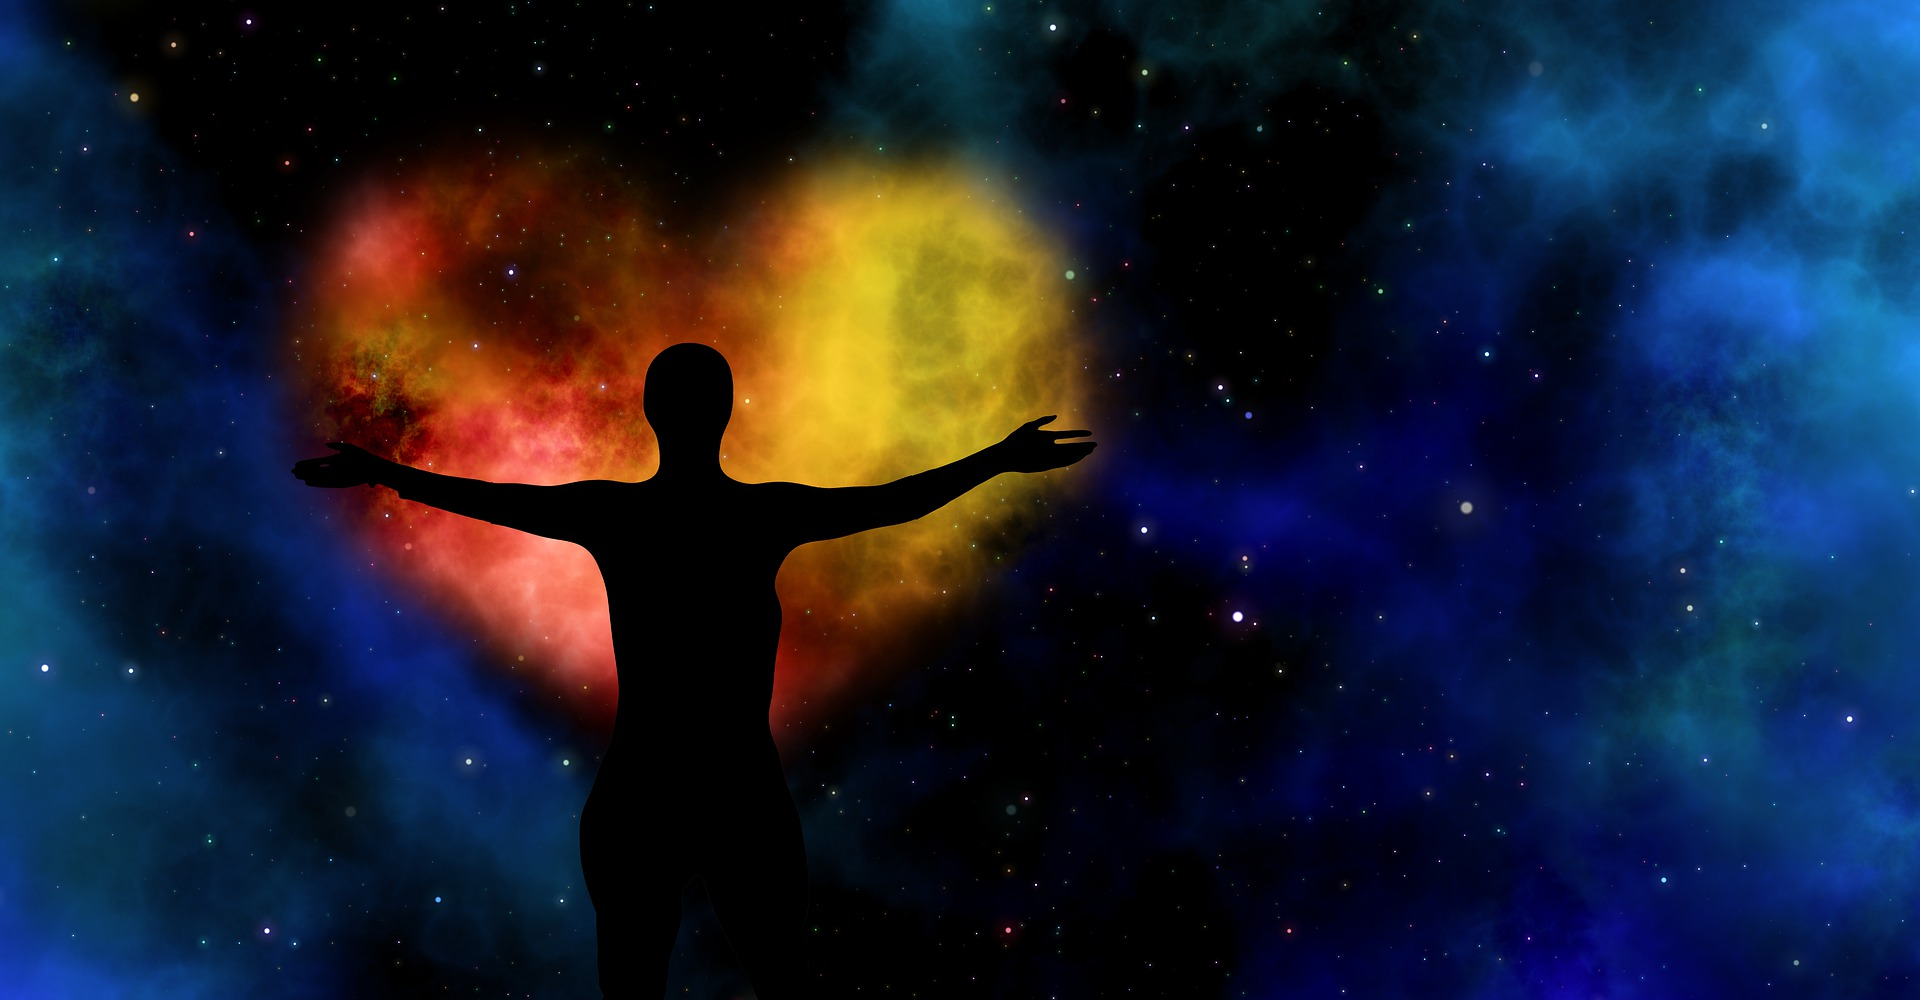 Man Holding the Mystical Heart of the Universe